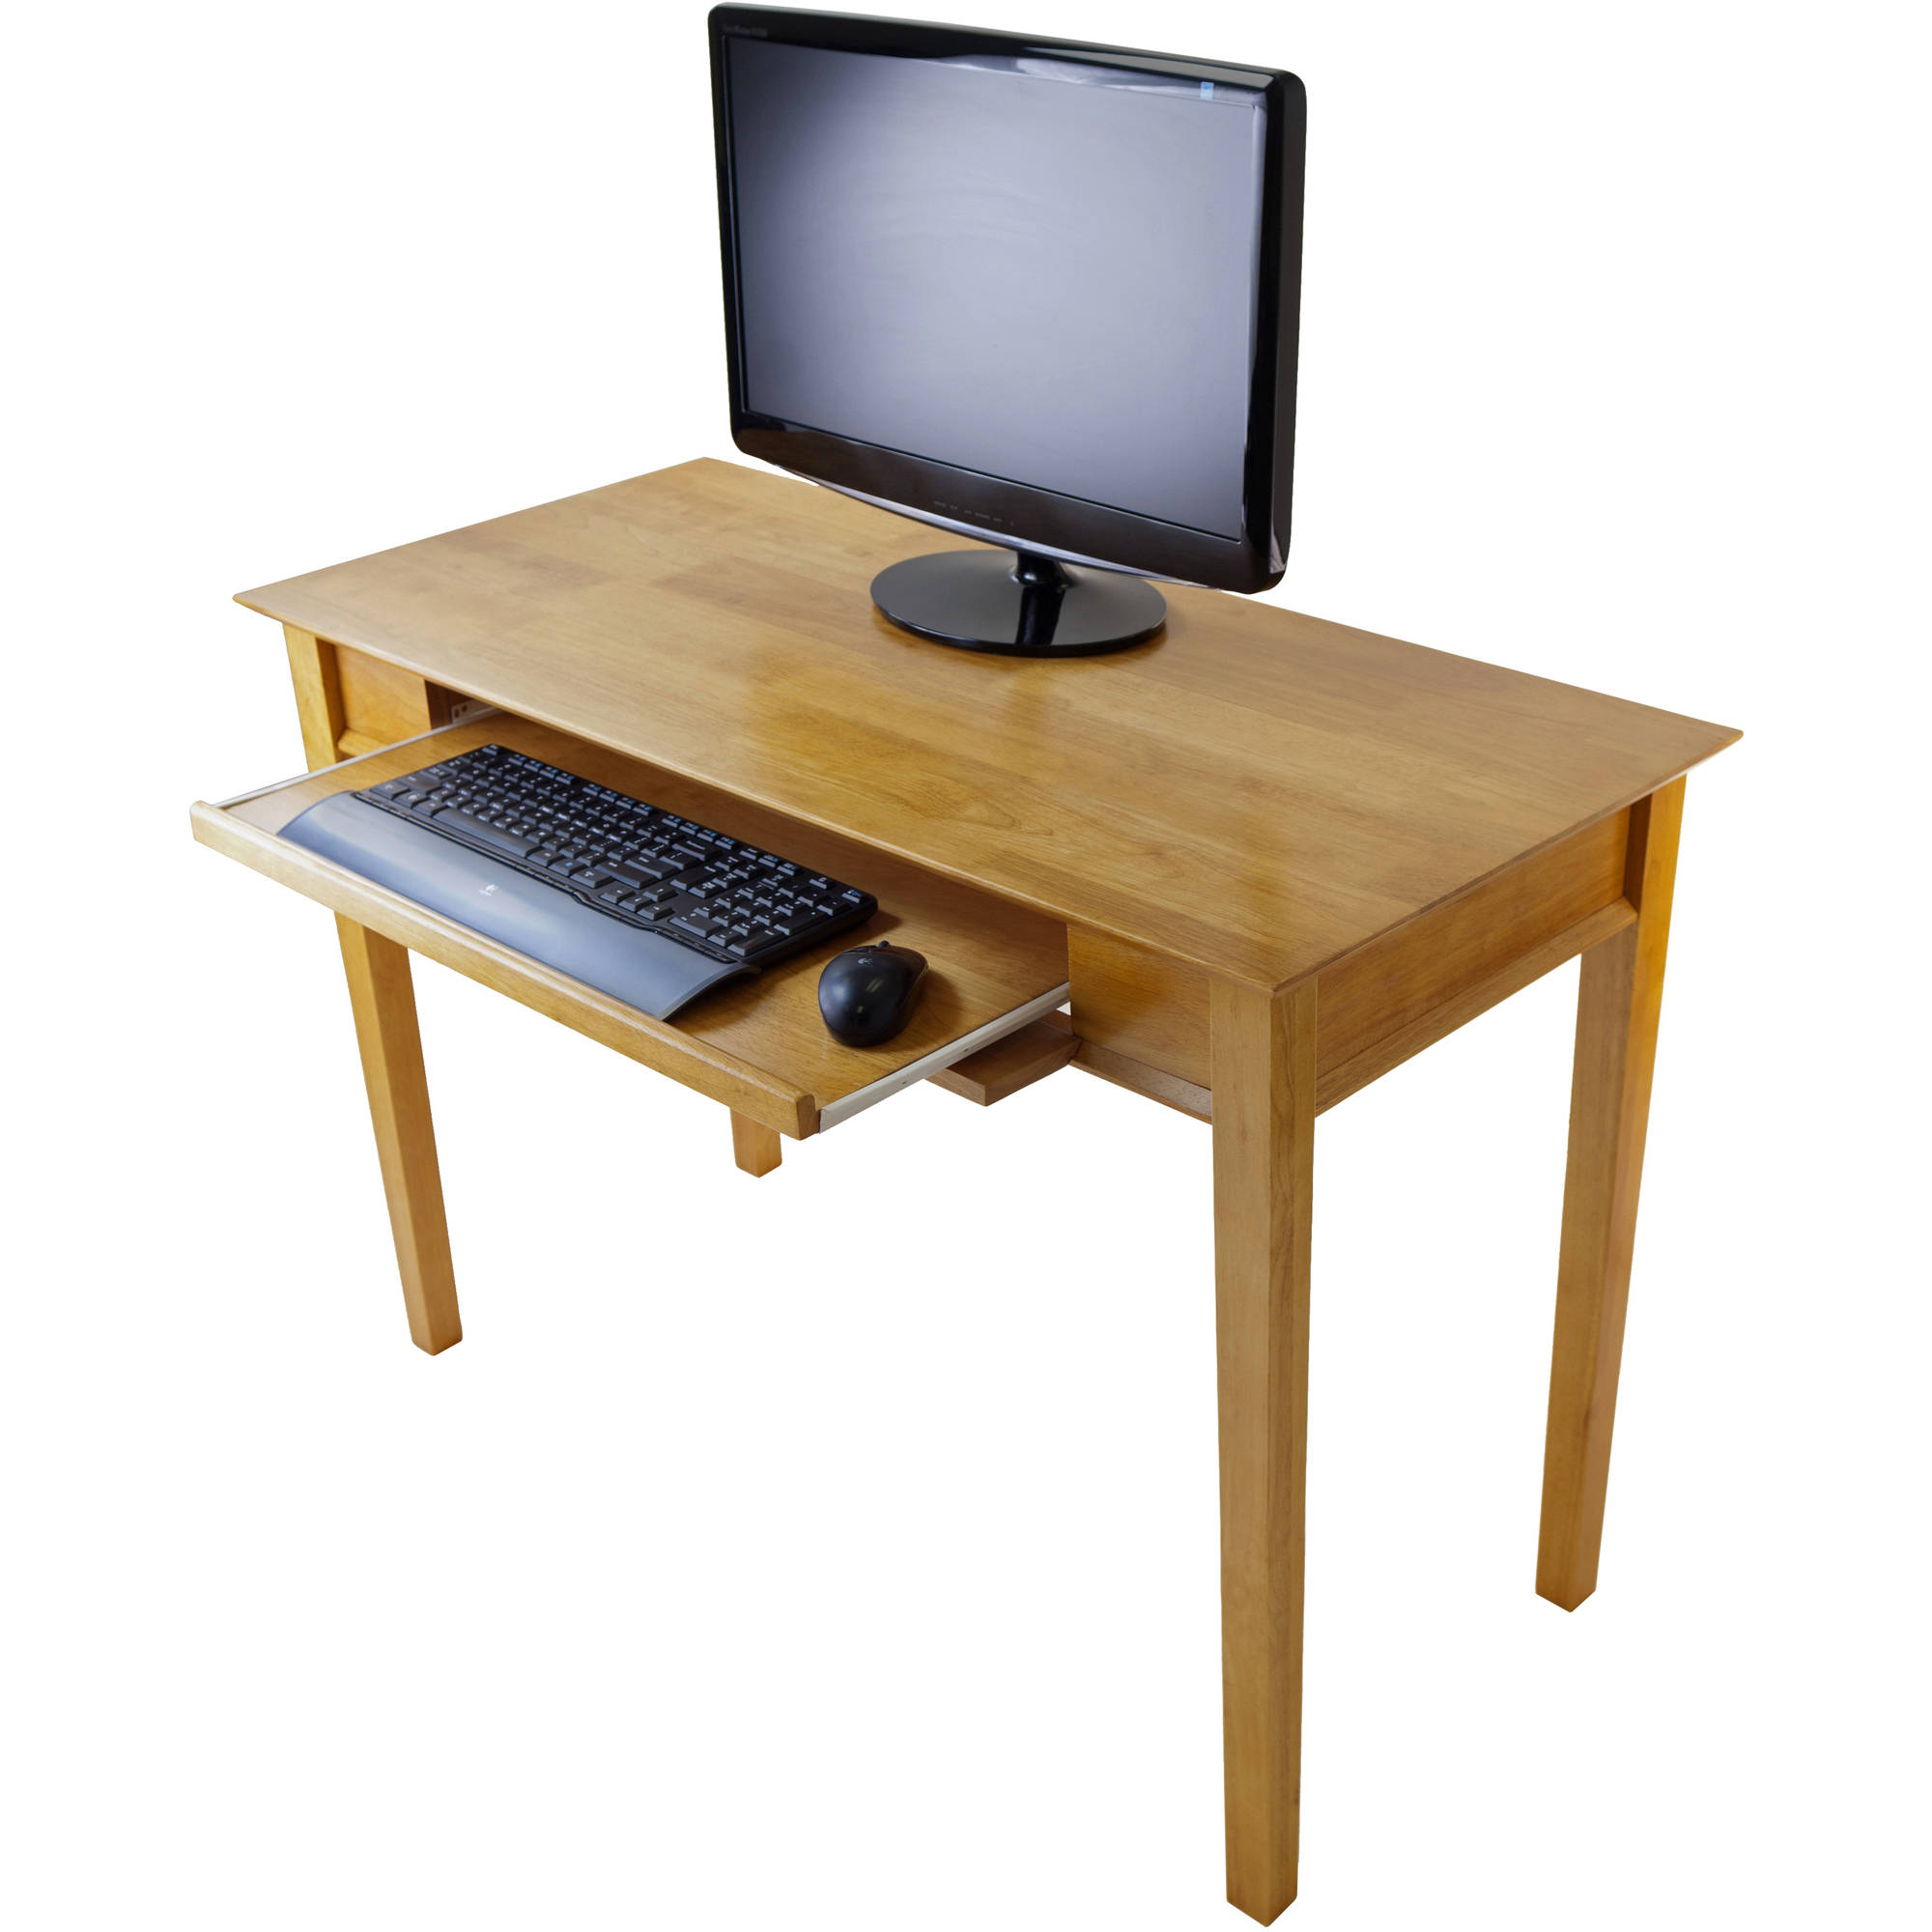 Winsome Wood Studio Home Office Computer Desk, Honey Pine Finish -  Traveller Location